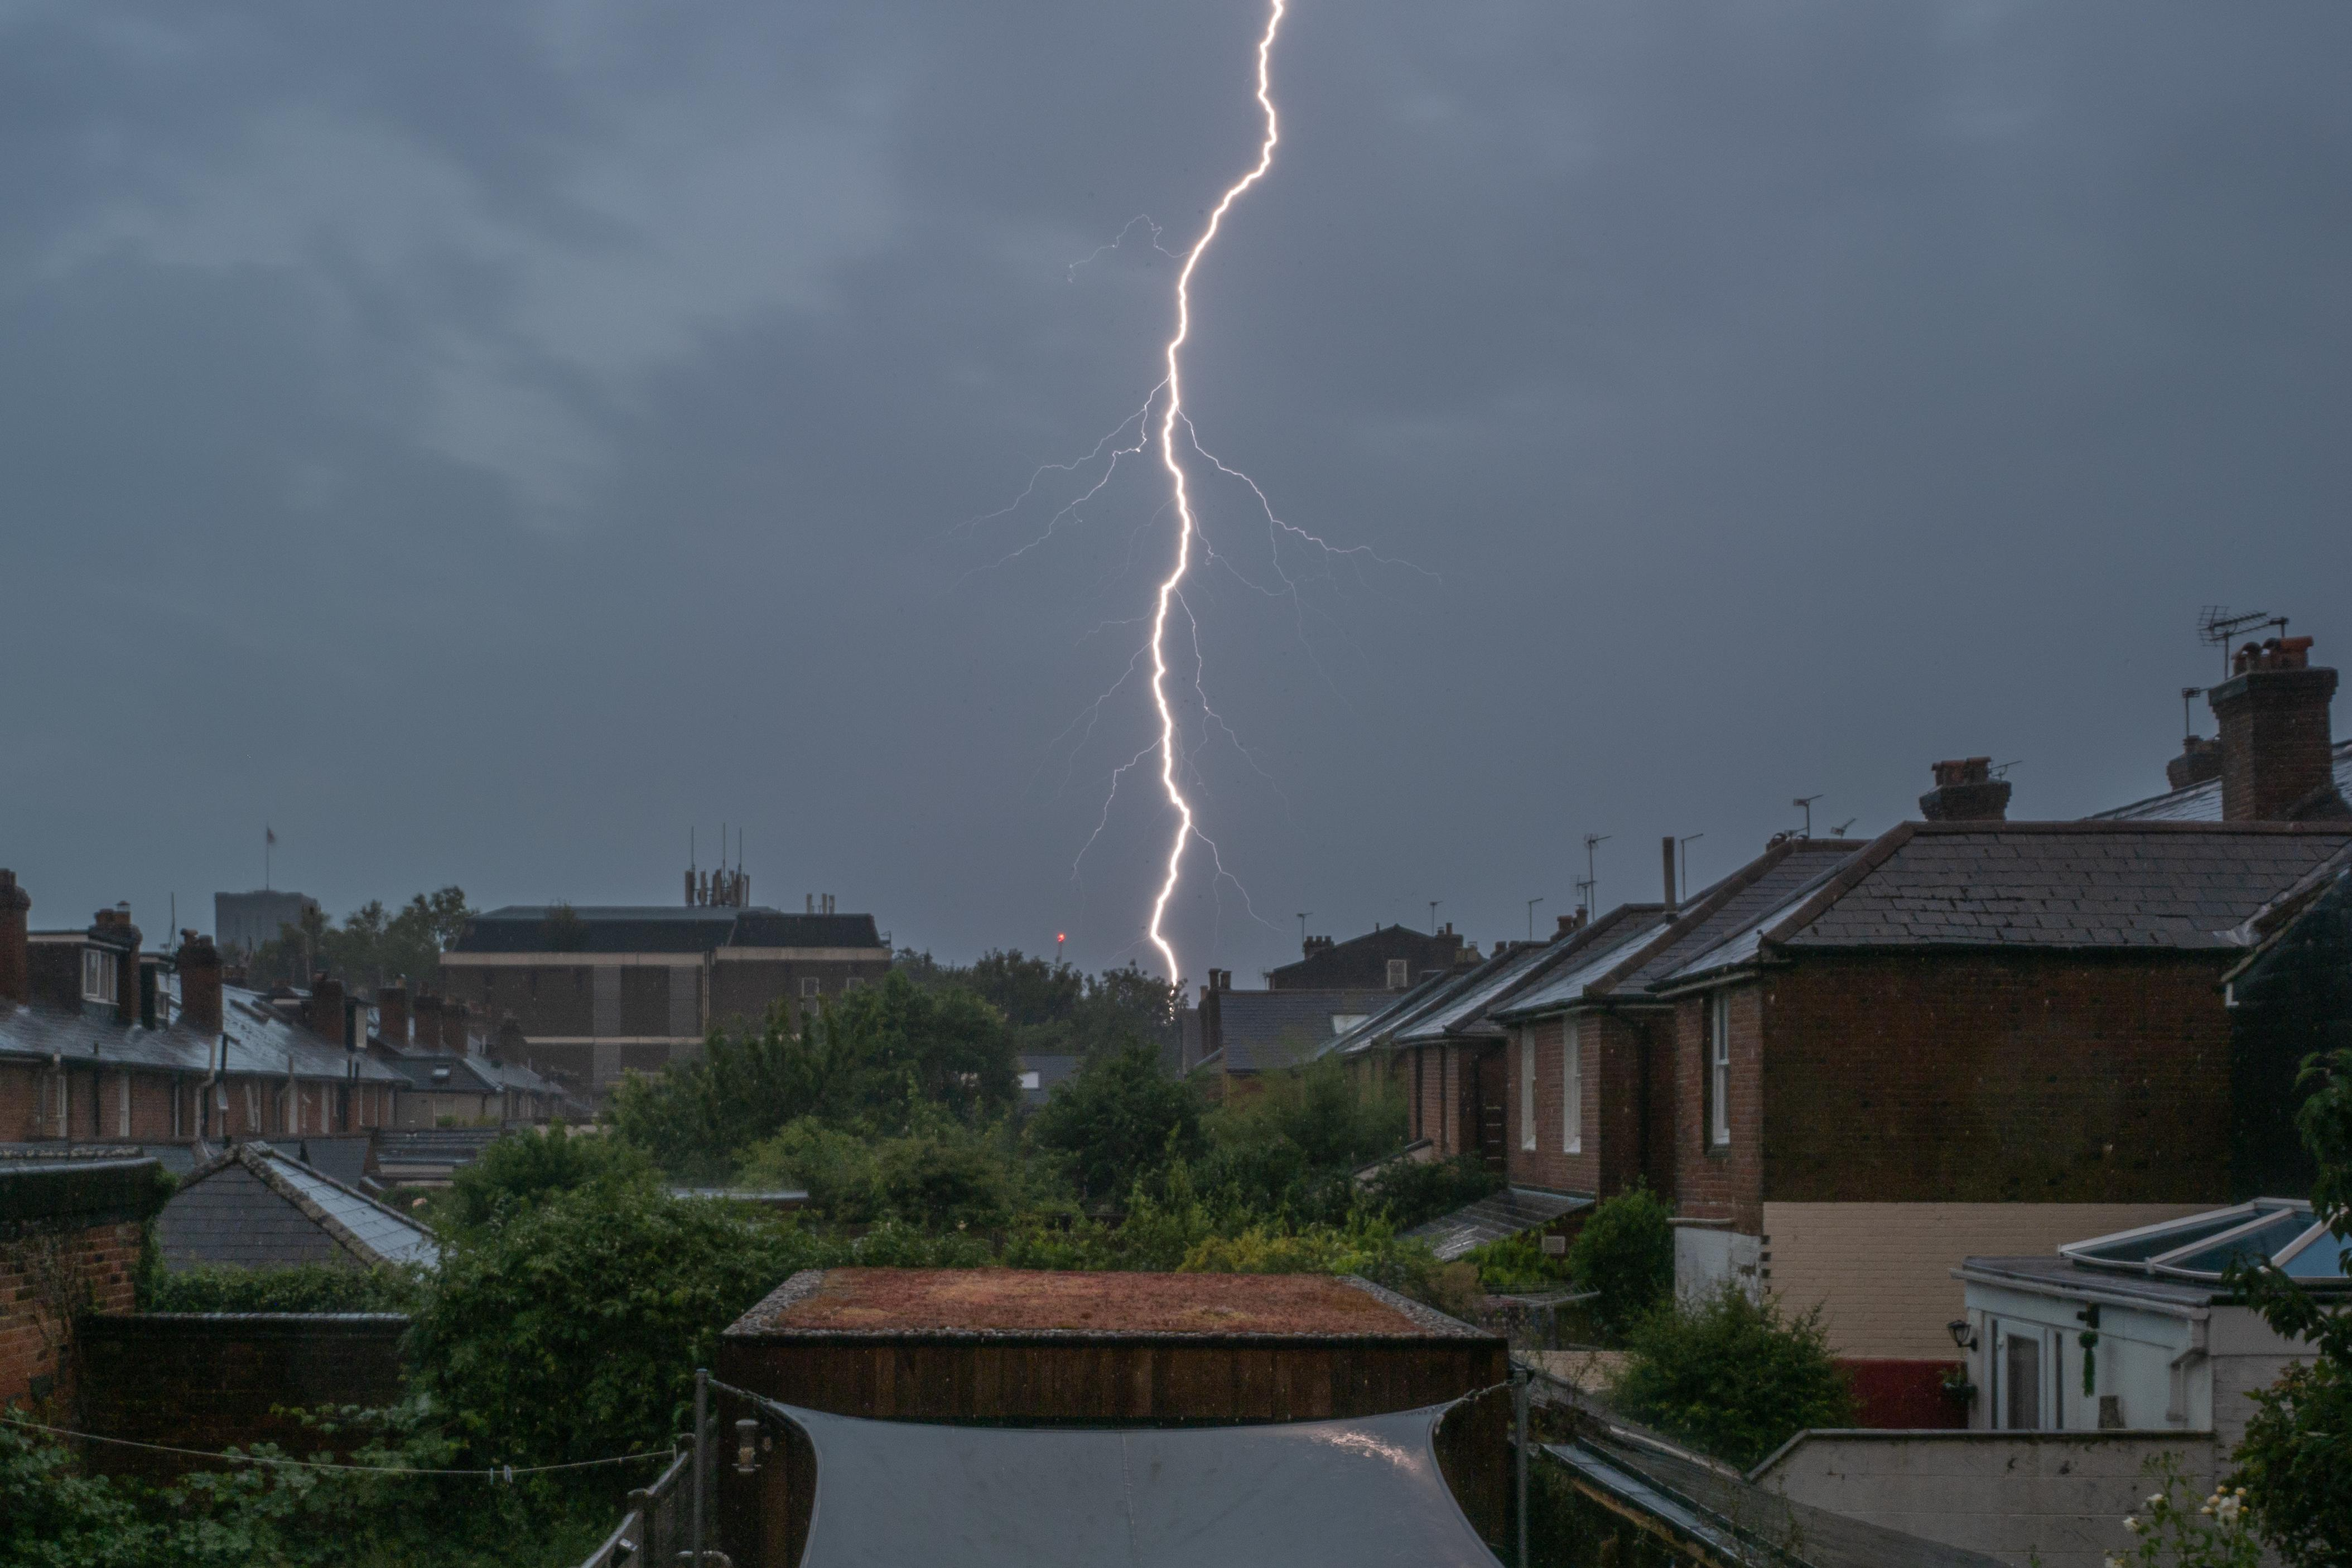 A lightning strike hits central Winchester early on the morning of 24th July 2021